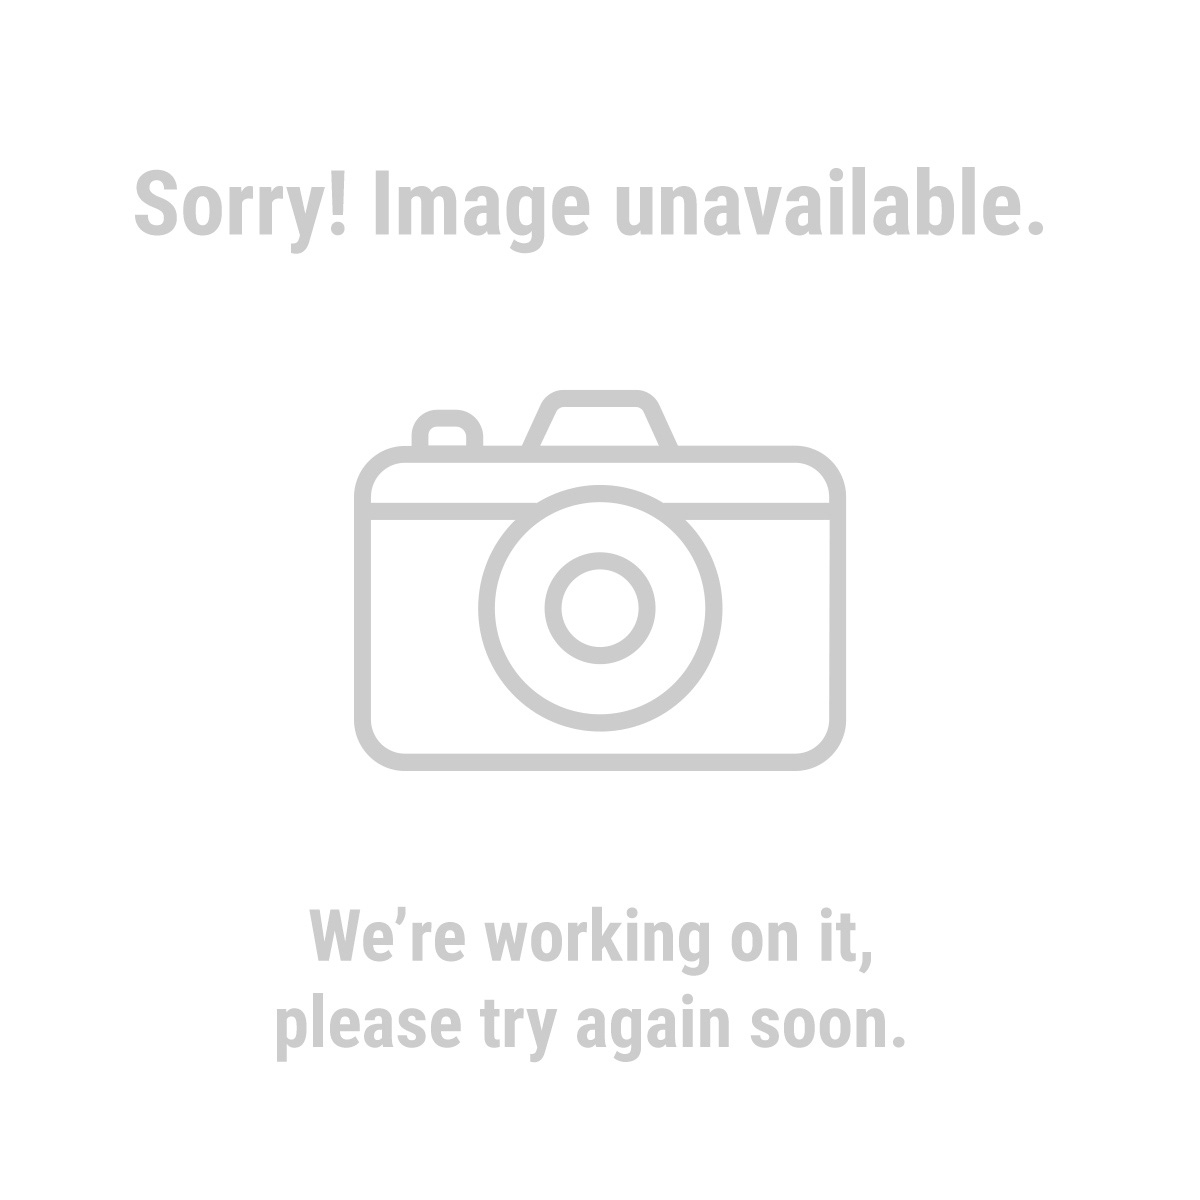 "Cen-Tech 93295 1"" SAE/Metric Digital Indicator"